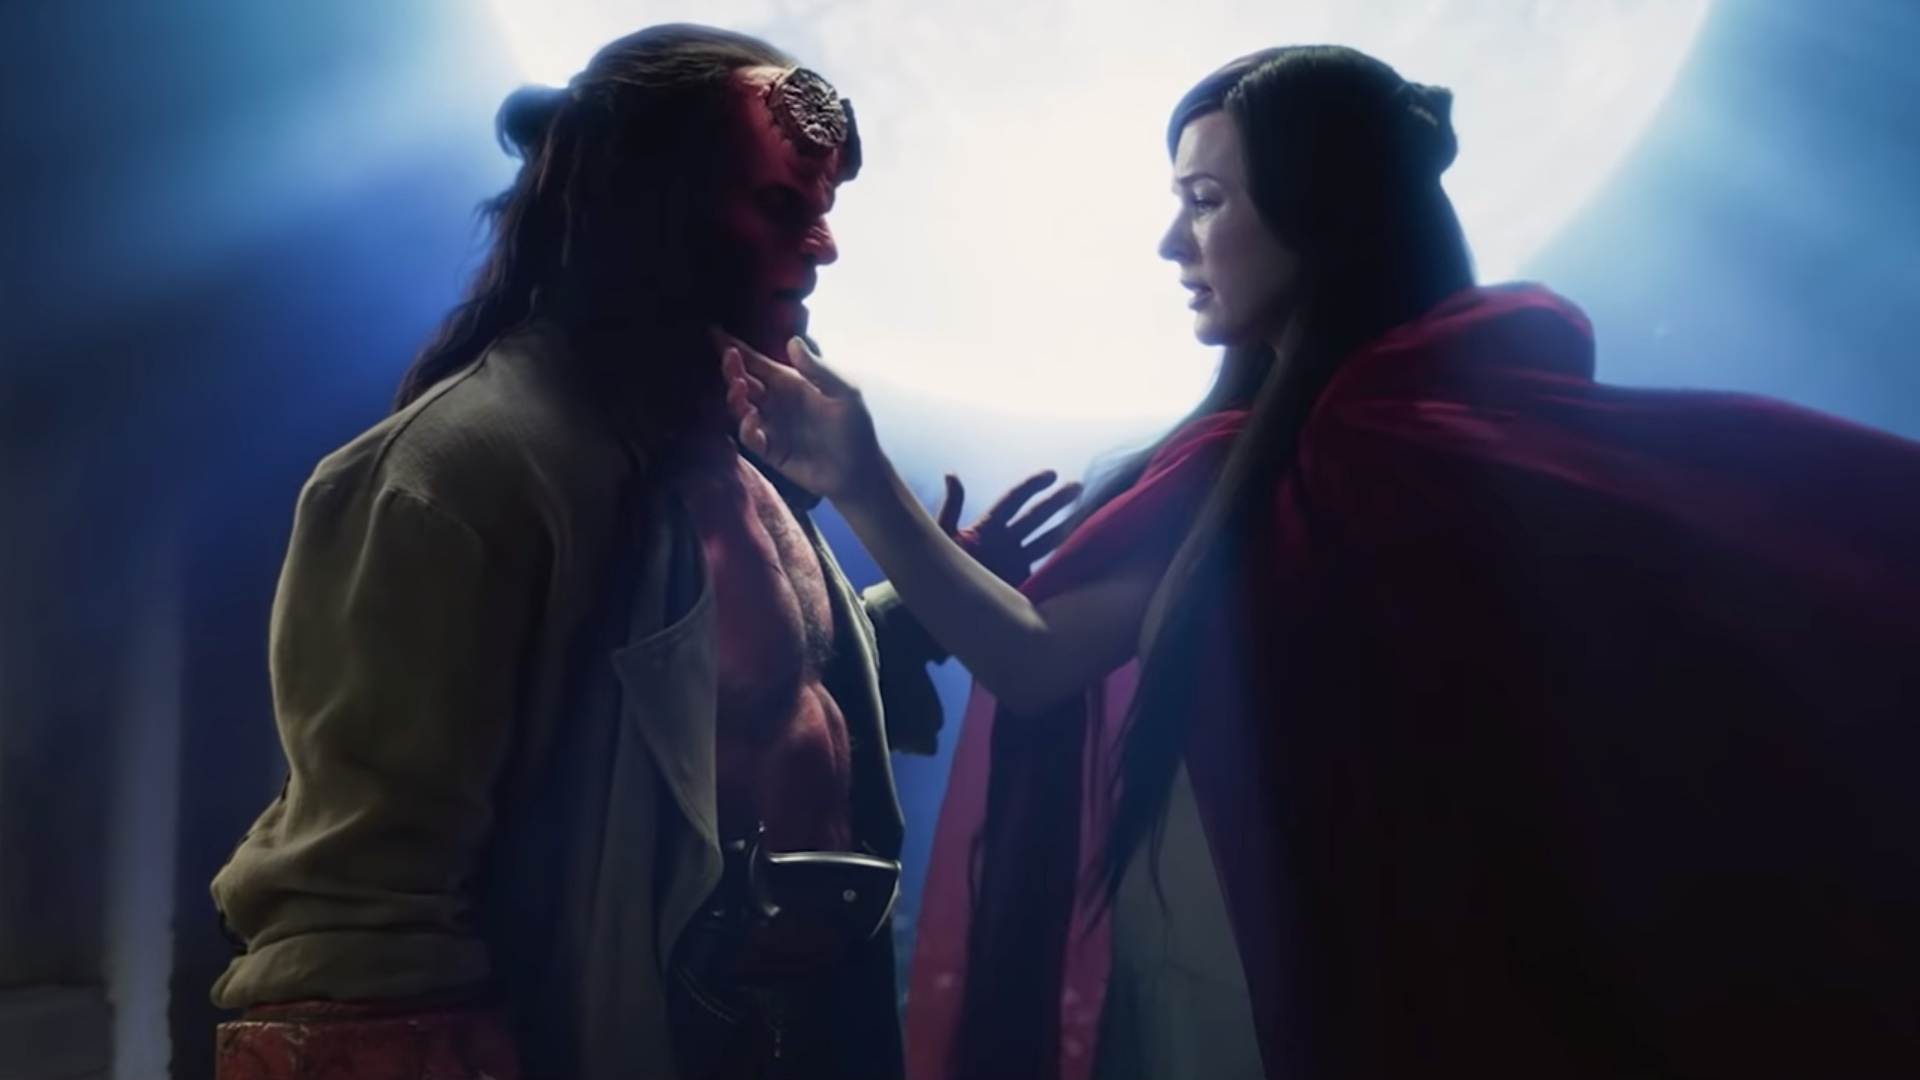 new-hellboy-featurette-focuses-on-the-films-loyalty-to-the-source-material-social.jpg